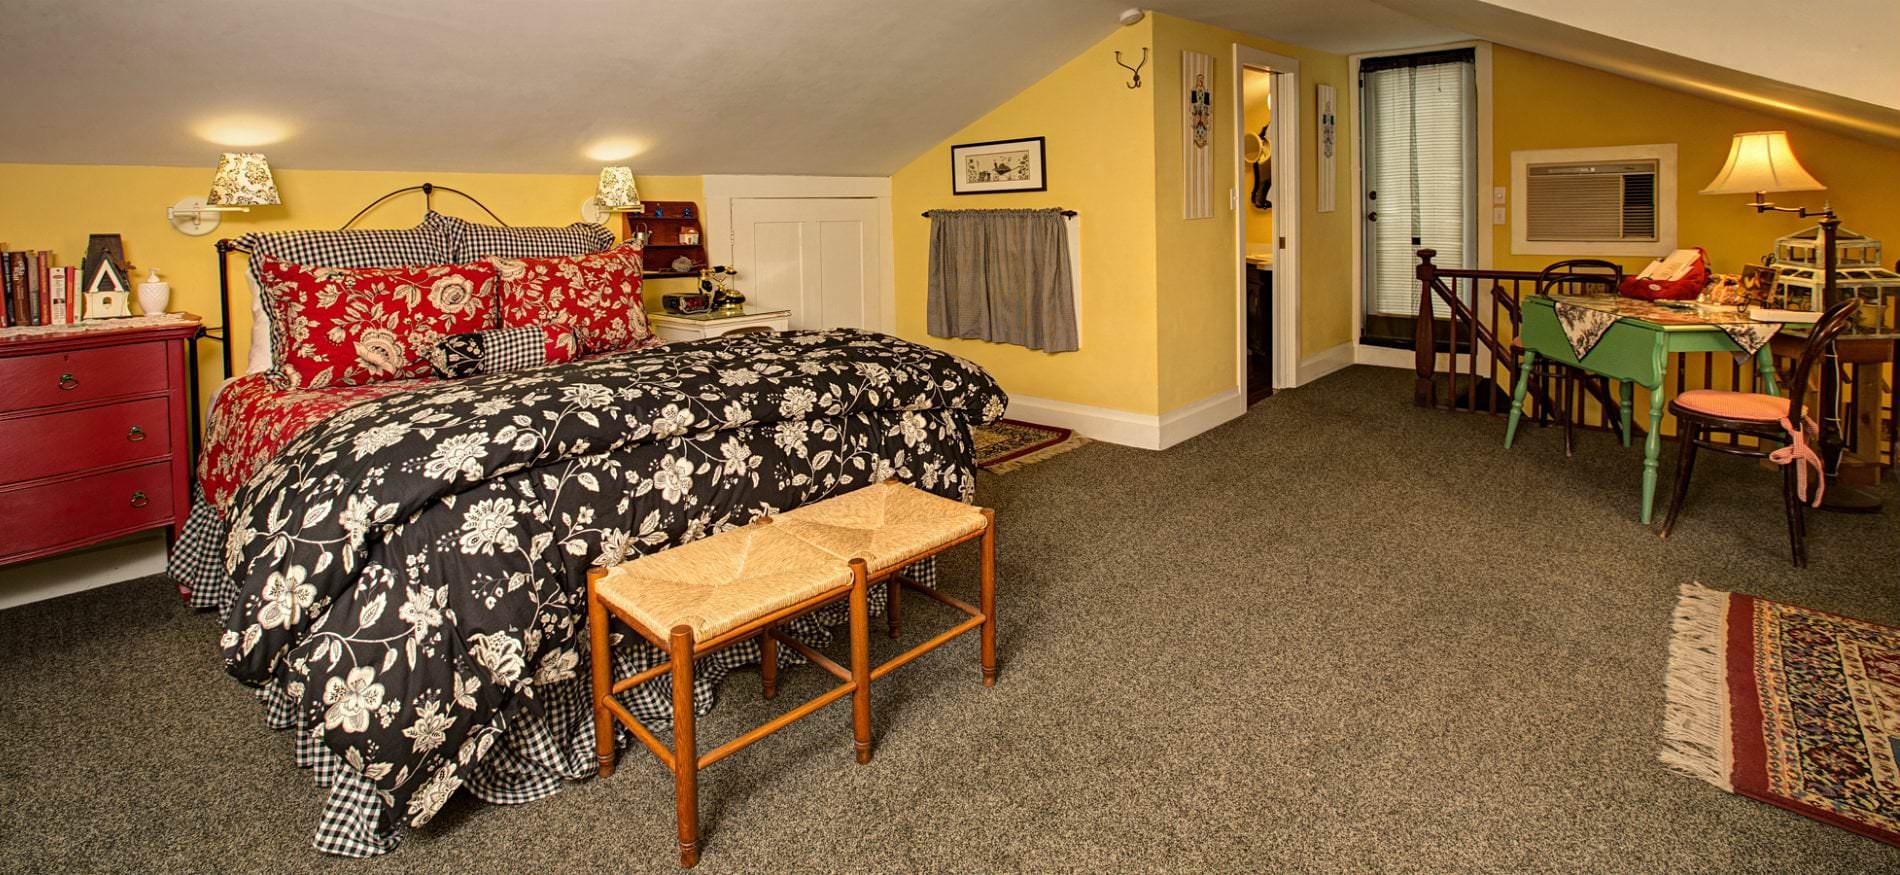 1. Spacious yellow room, vaulted ceilings, tan carpet, black, red and white covered bed, red nightstand, and wood table and chairs